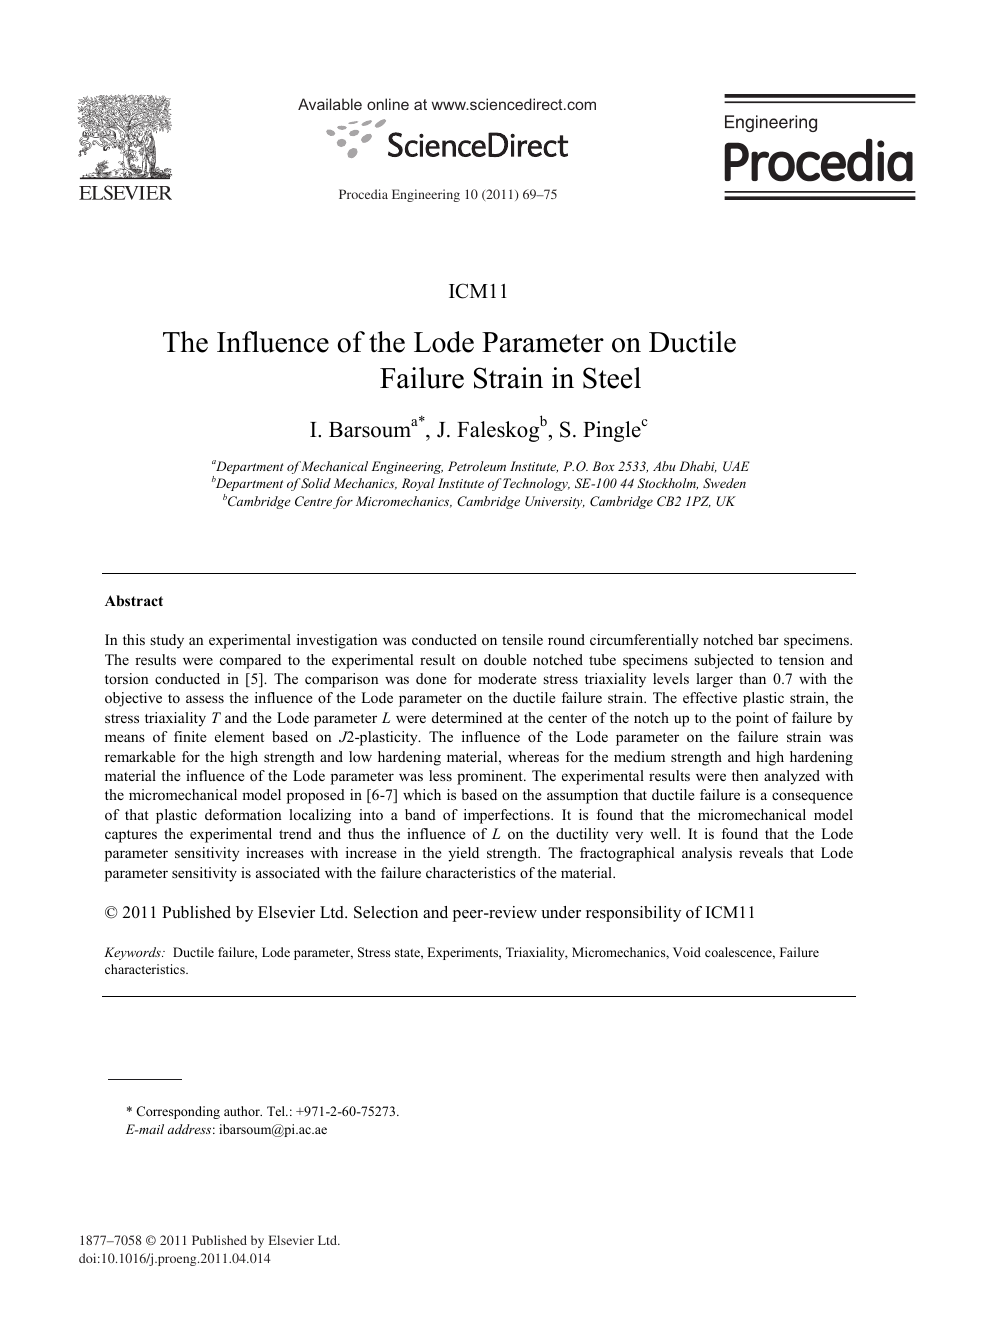 The Influence of the Lode Parameter on Ductile Failure Strain in